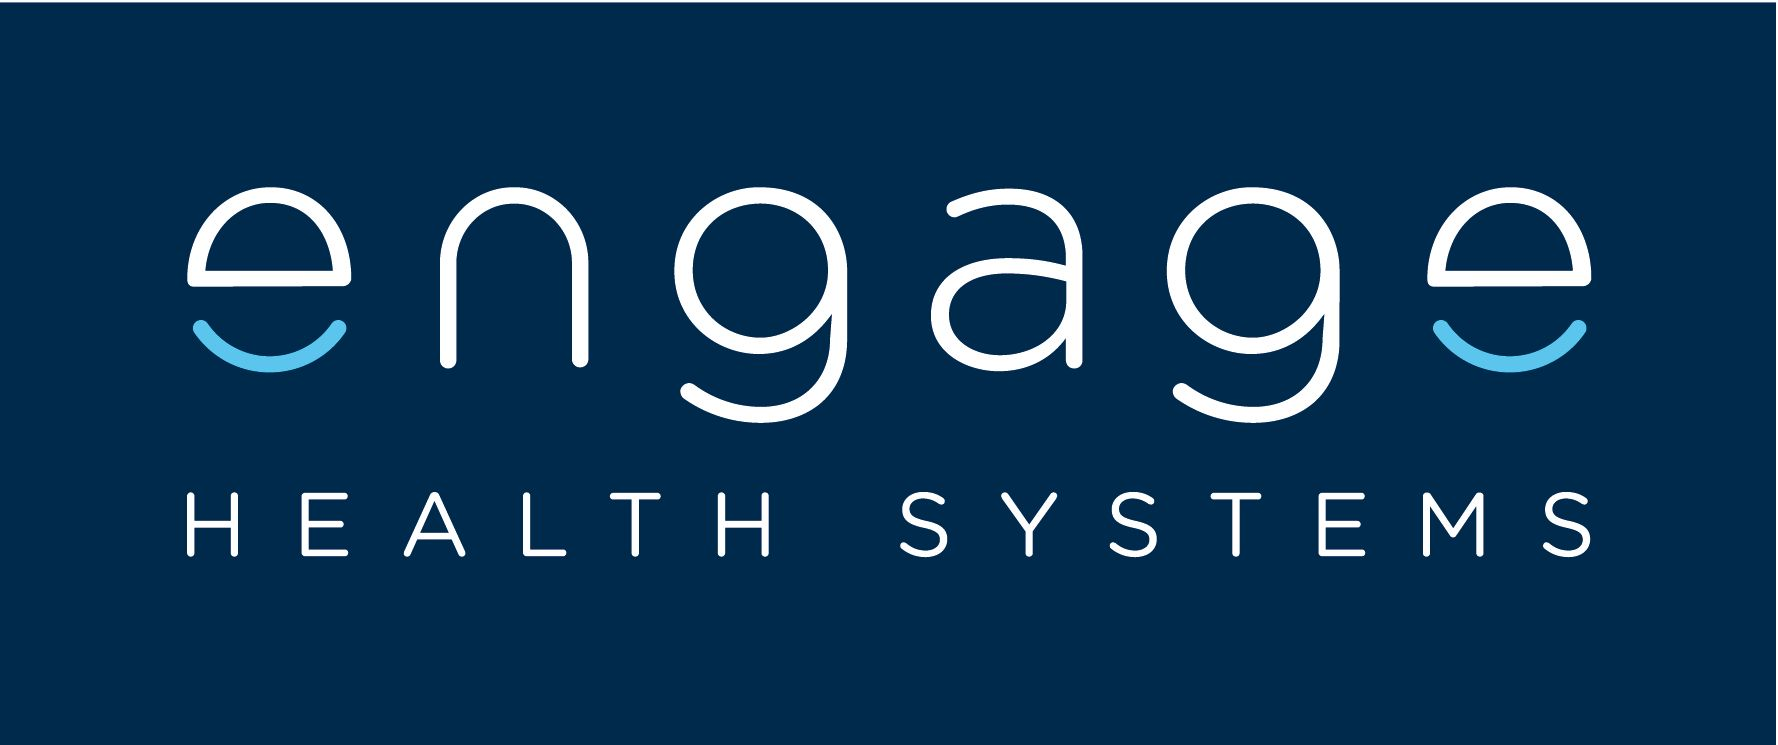 Engage Health Systems Ltd